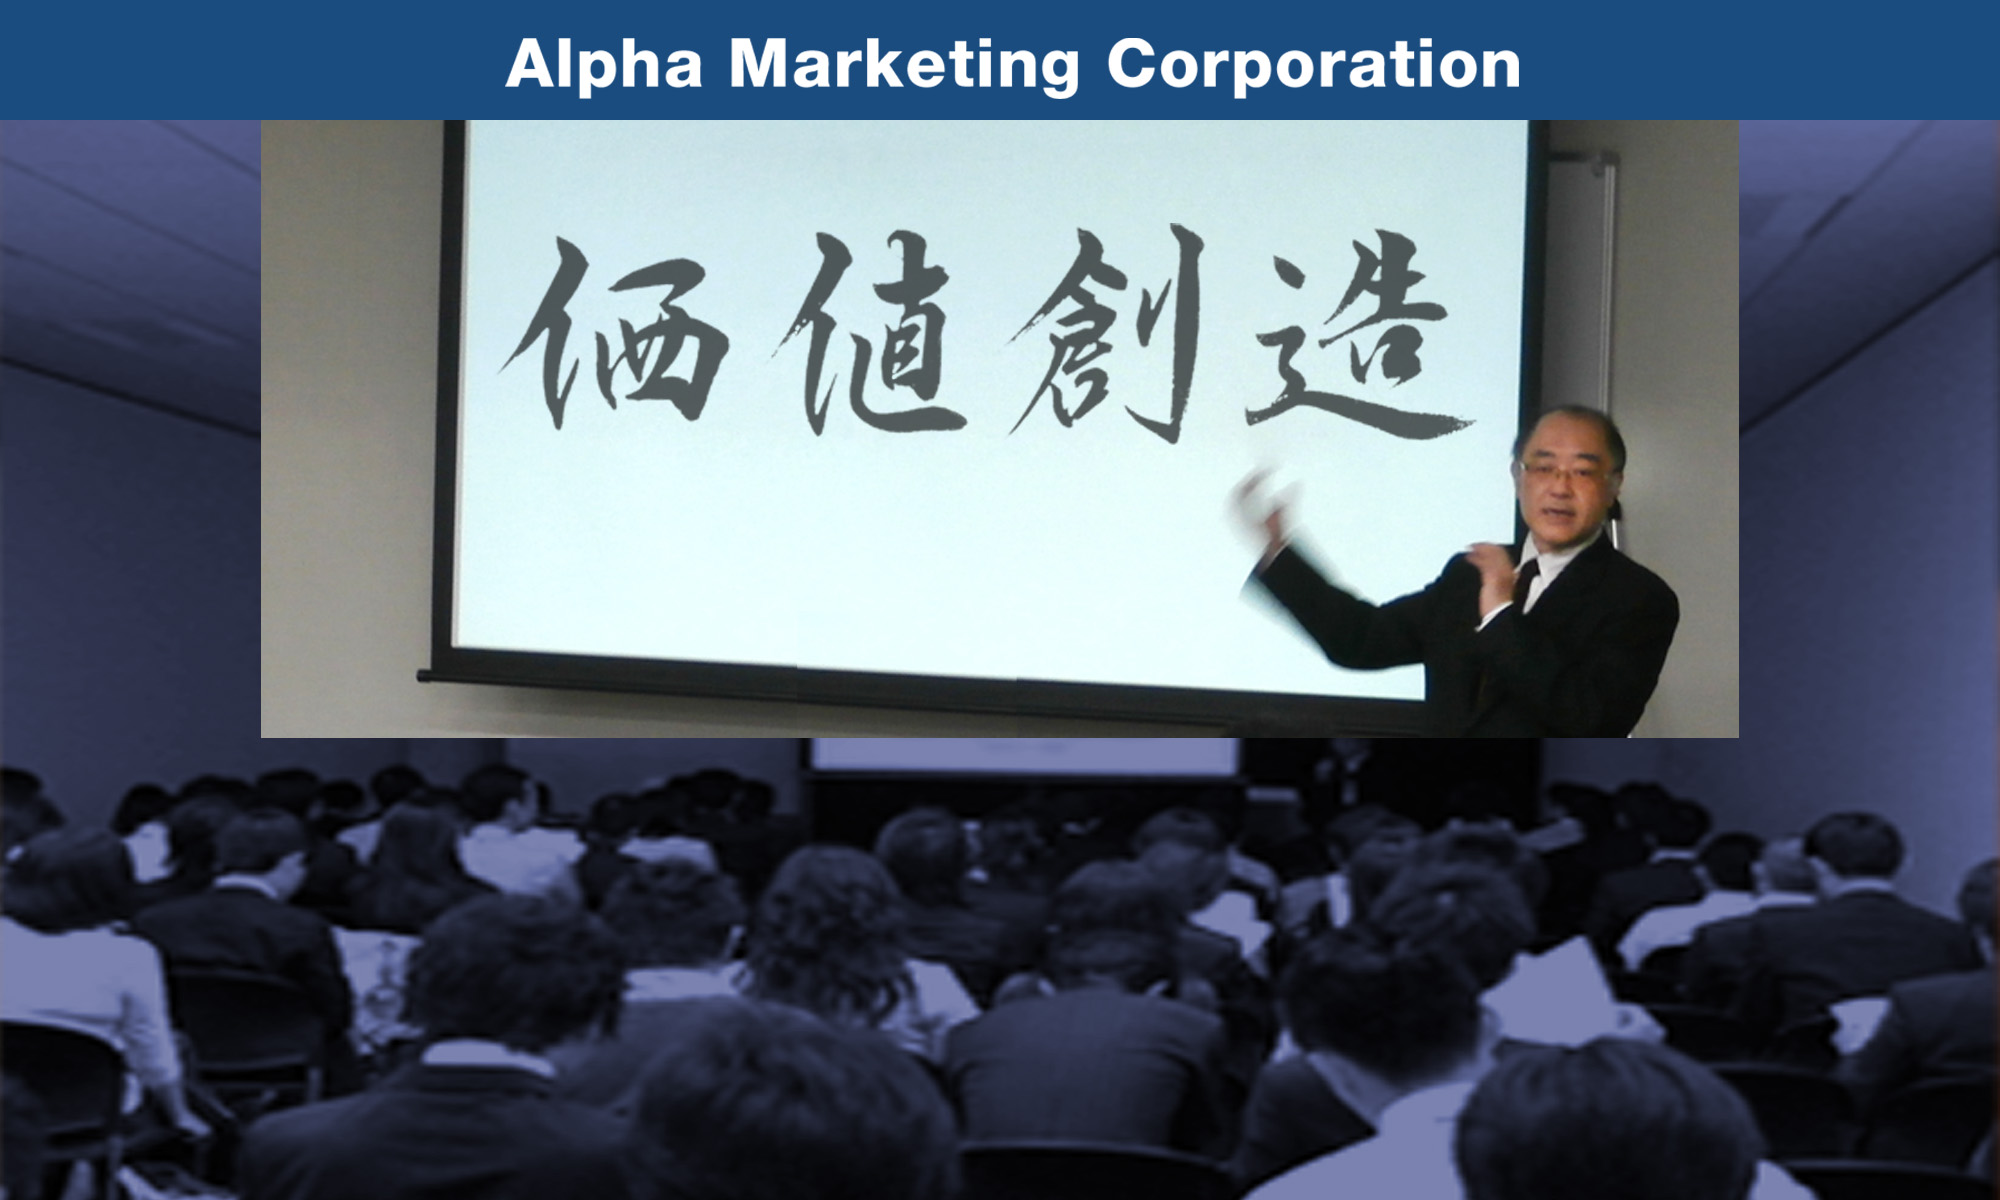 ALPHA MARKETING CORPORATION